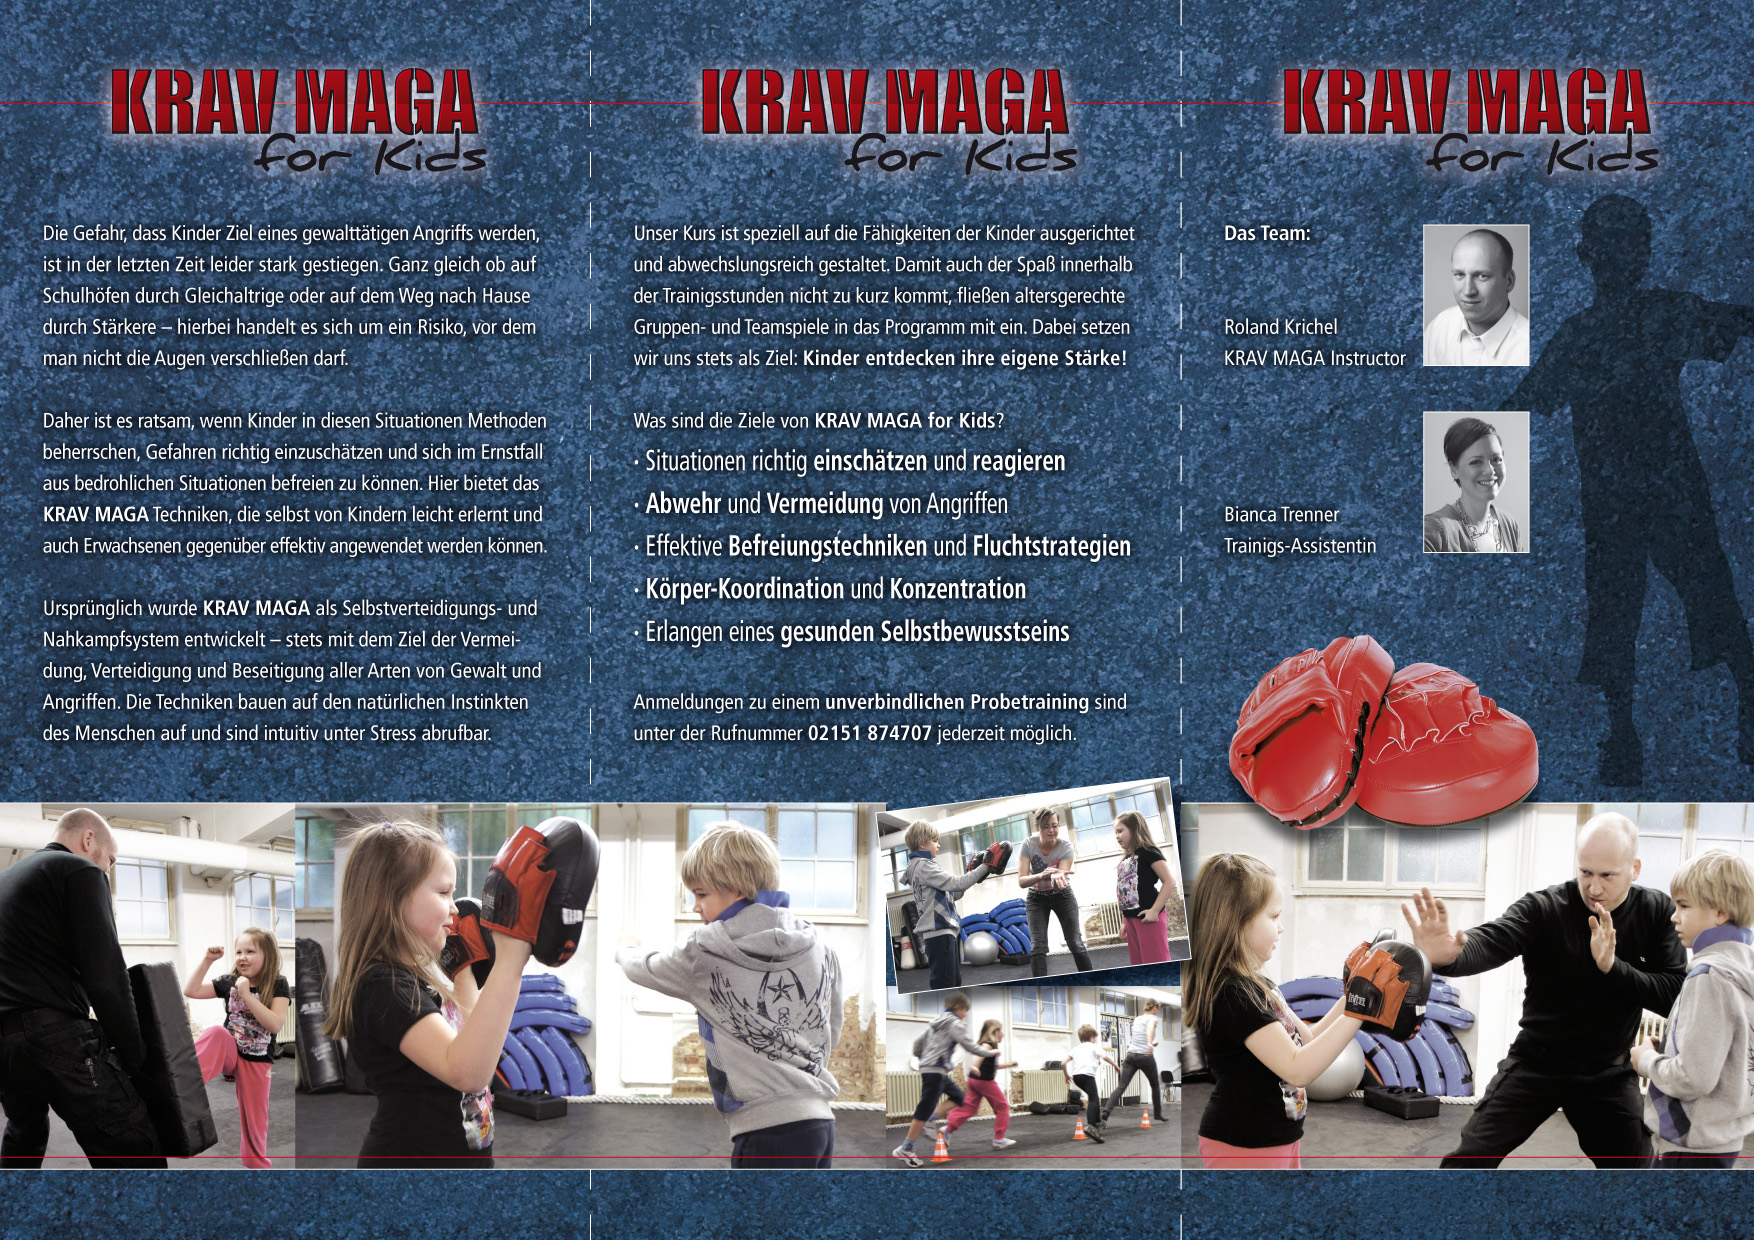 krav maga for kids schule f r selbstverteidigung krav maga als selbstverteidigung. Black Bedroom Furniture Sets. Home Design Ideas